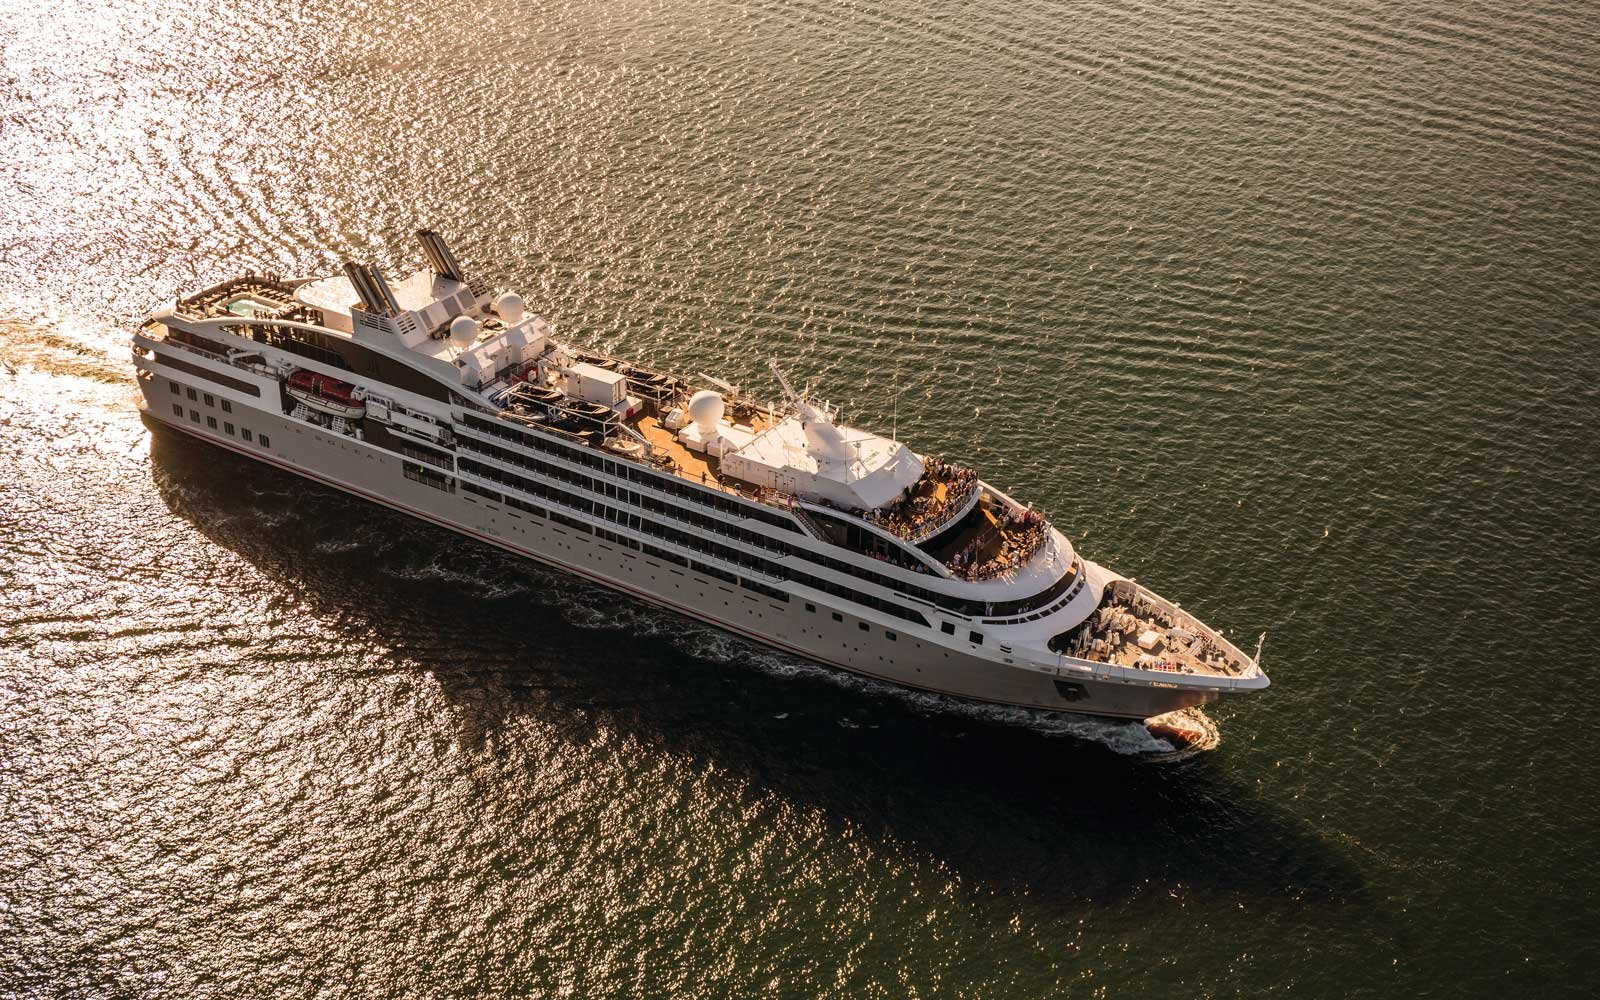 Le Soleal cruise ship partnership between Tauck and Ponant